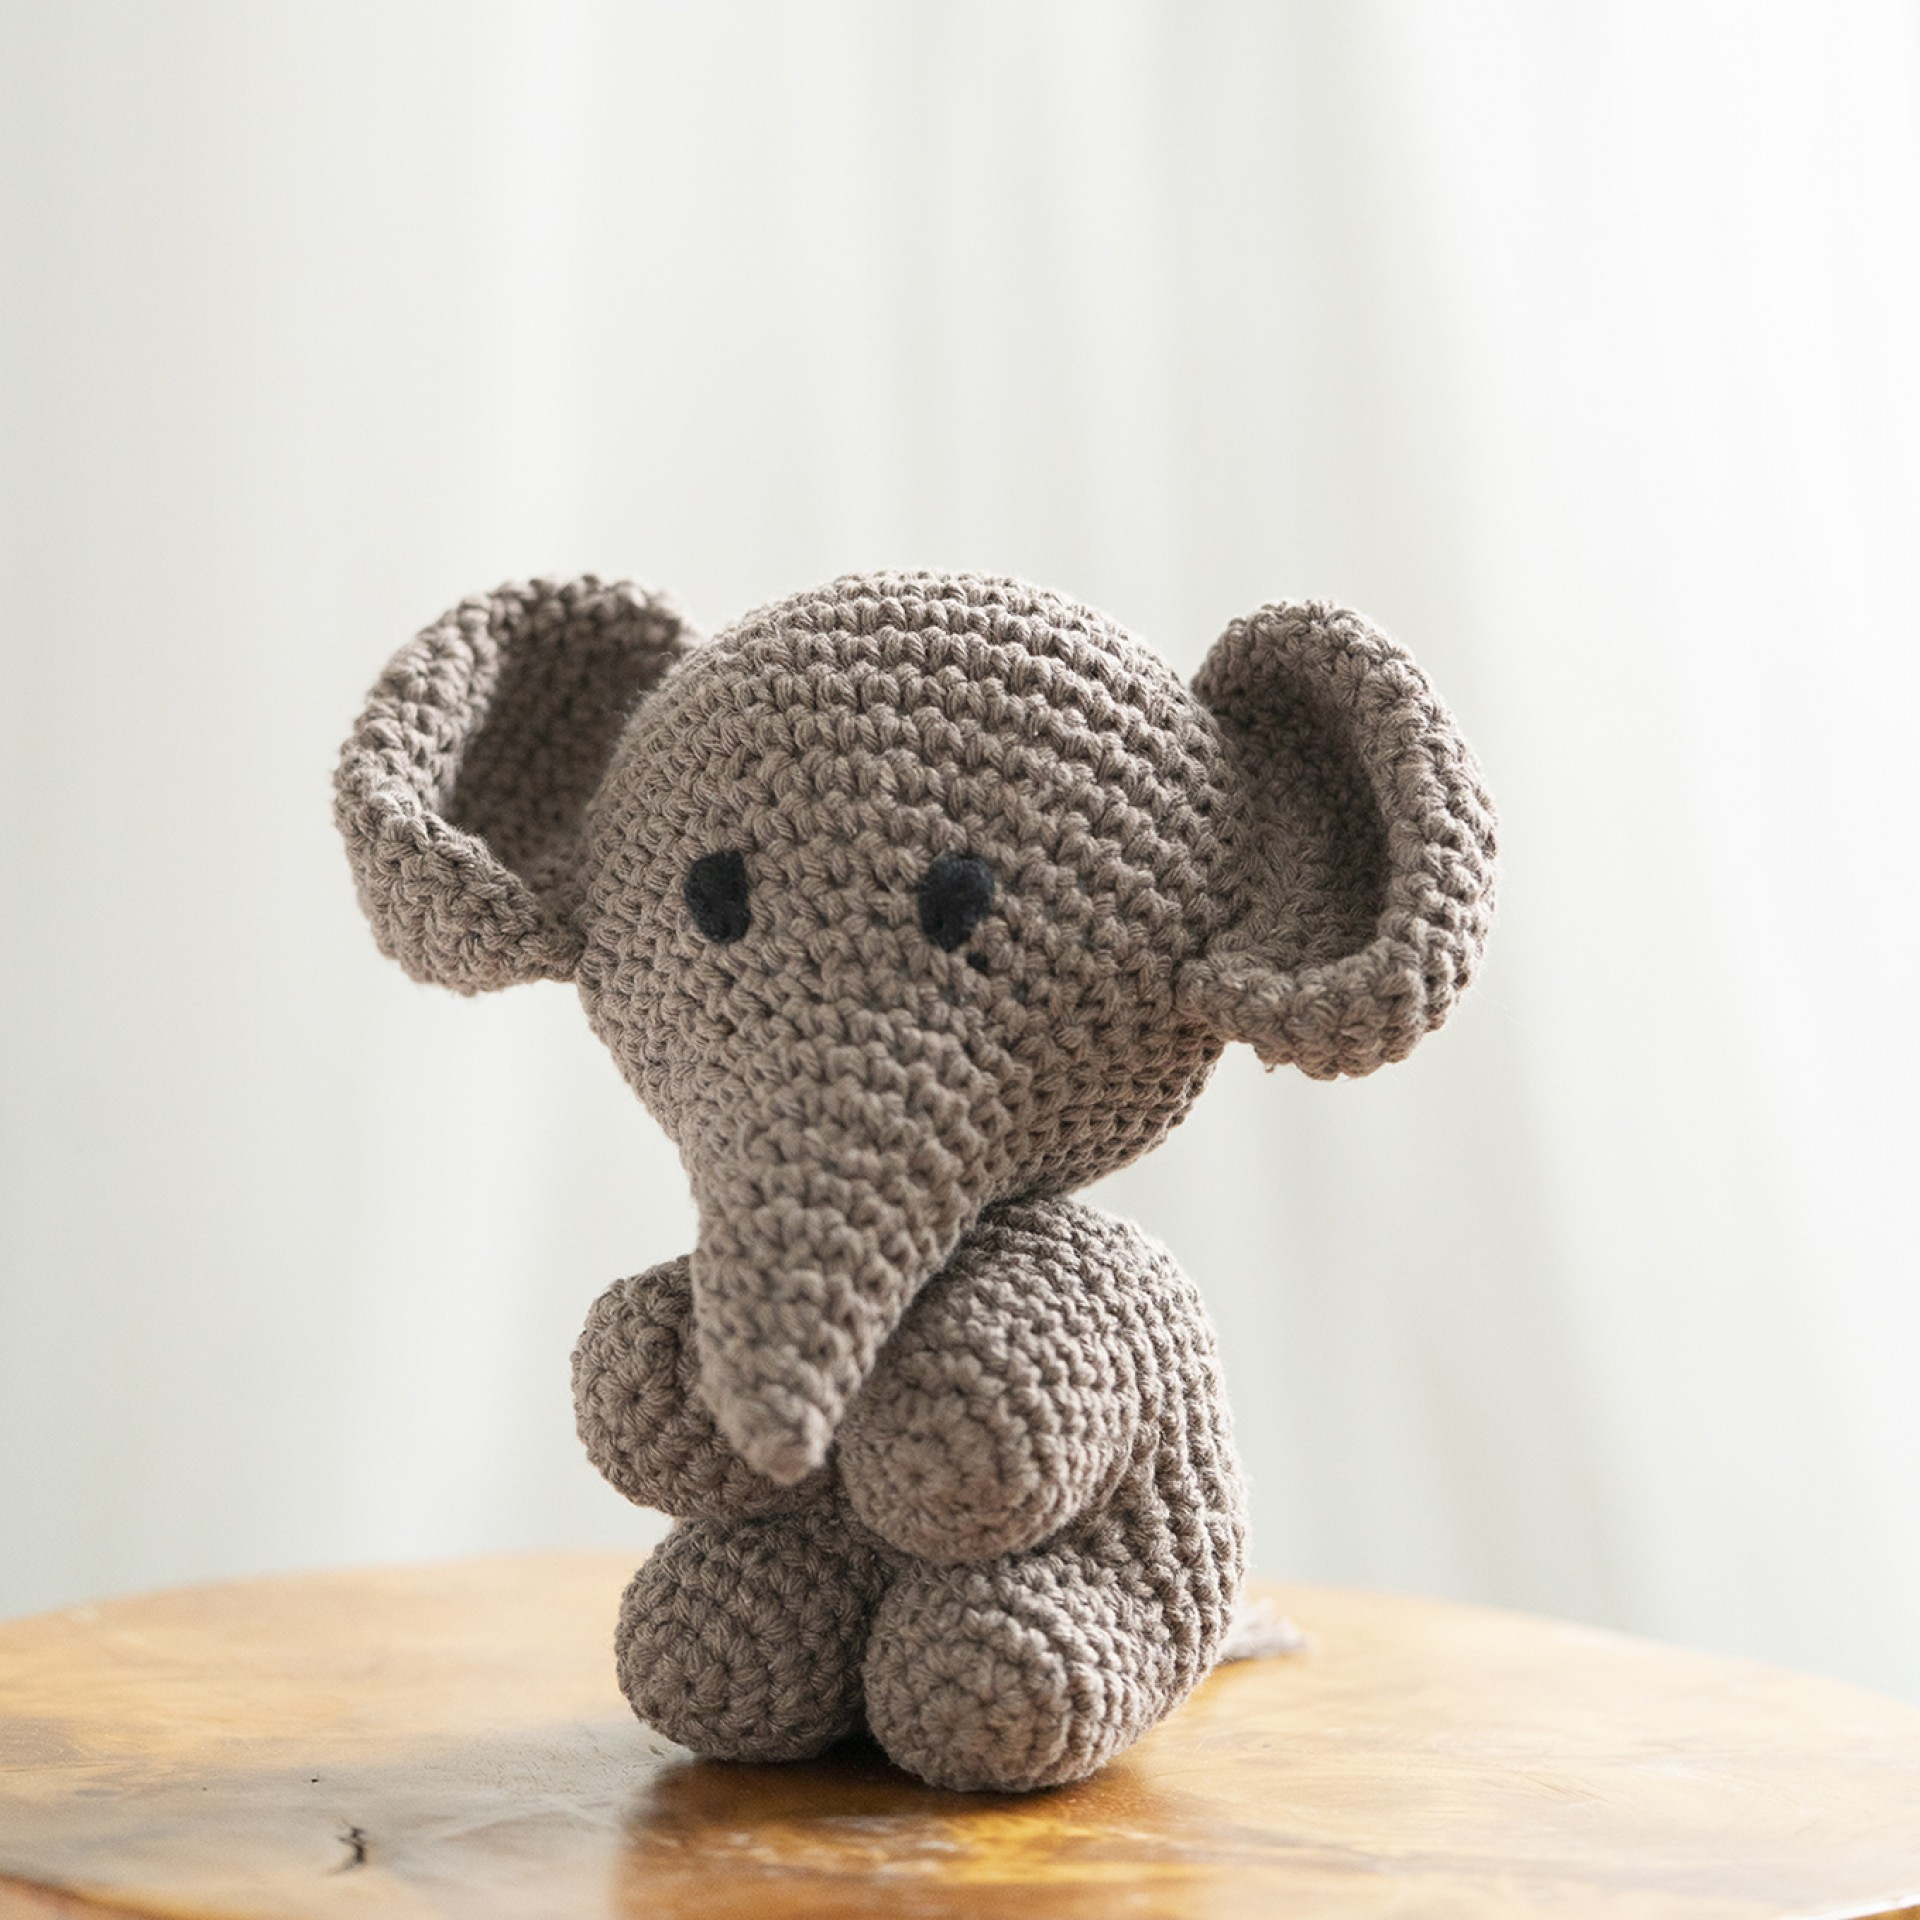 Hoooked DIY Crochet Kit Elephant Mo Amigurumi Eco Barbante Recycled Toy Gift